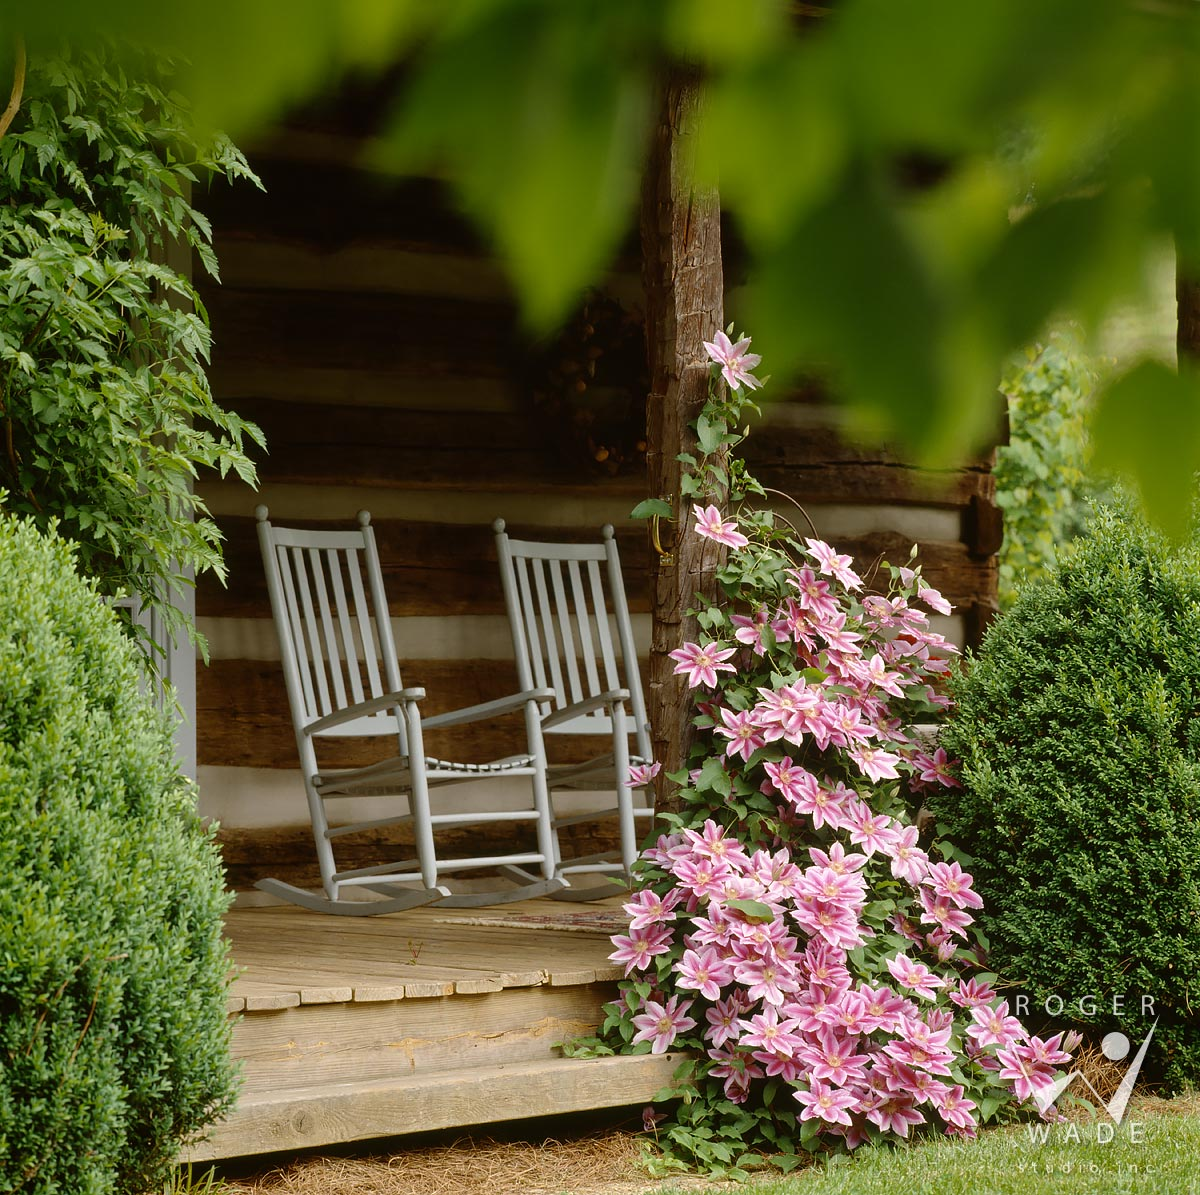 roger wade studio architectural photography of porch vignette with rocking chairs, rustic log home cabin, waynesville, north carolina